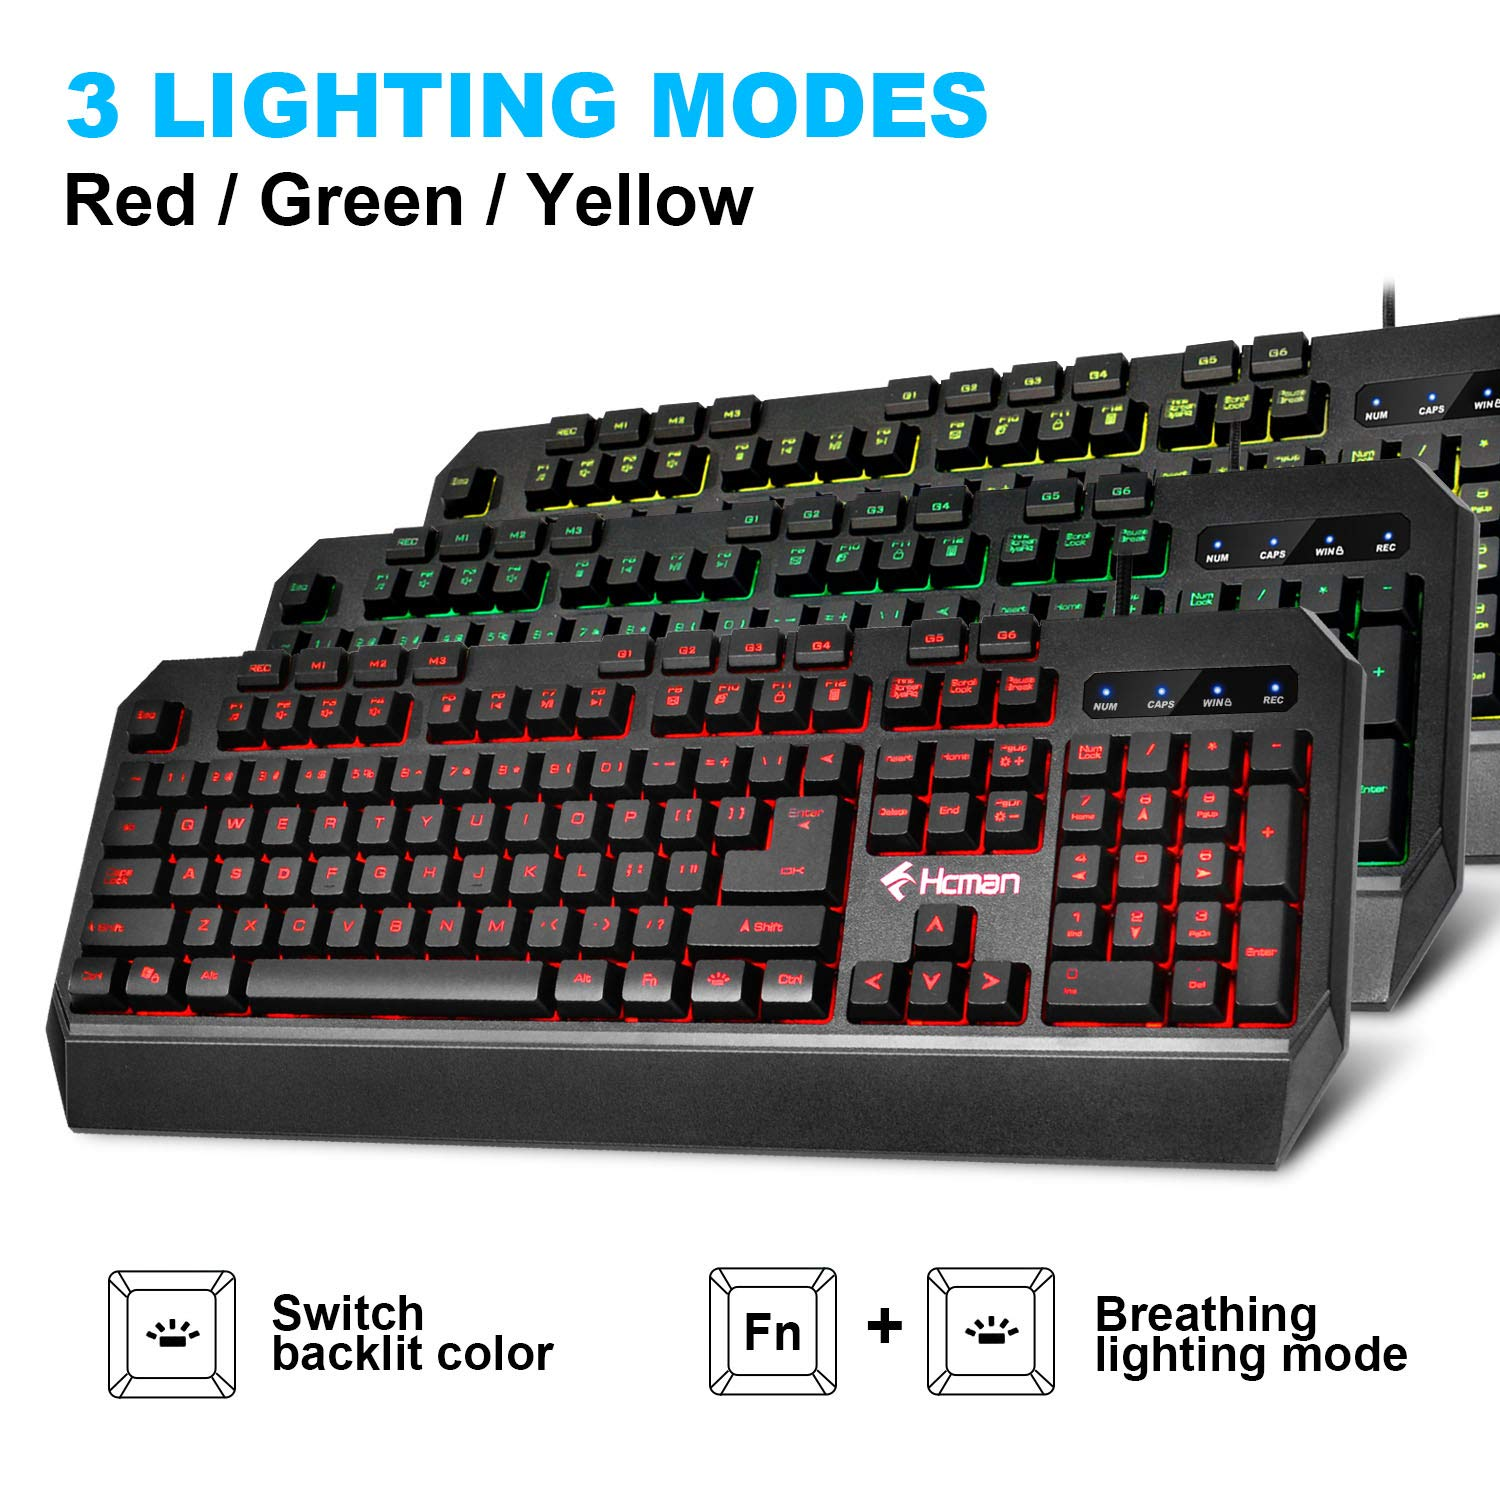 Gaming Keyboard Mouse LED Combo – Hcman 18 Different Macro Keys,Backlit Wired Membrane Keyboard Programmable 7 Buttons 5 DPI Mode USB Gaming Mouse, Support Macro Editor, for PC MAC Computer Gamers